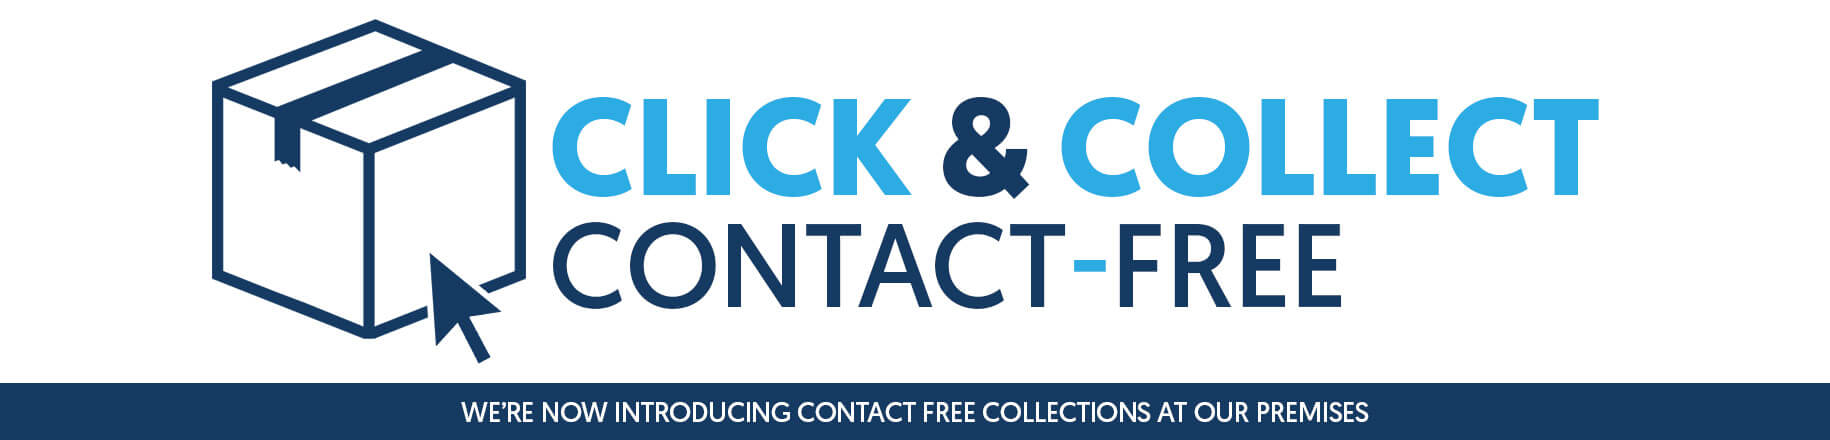 Click & Collect Header Image